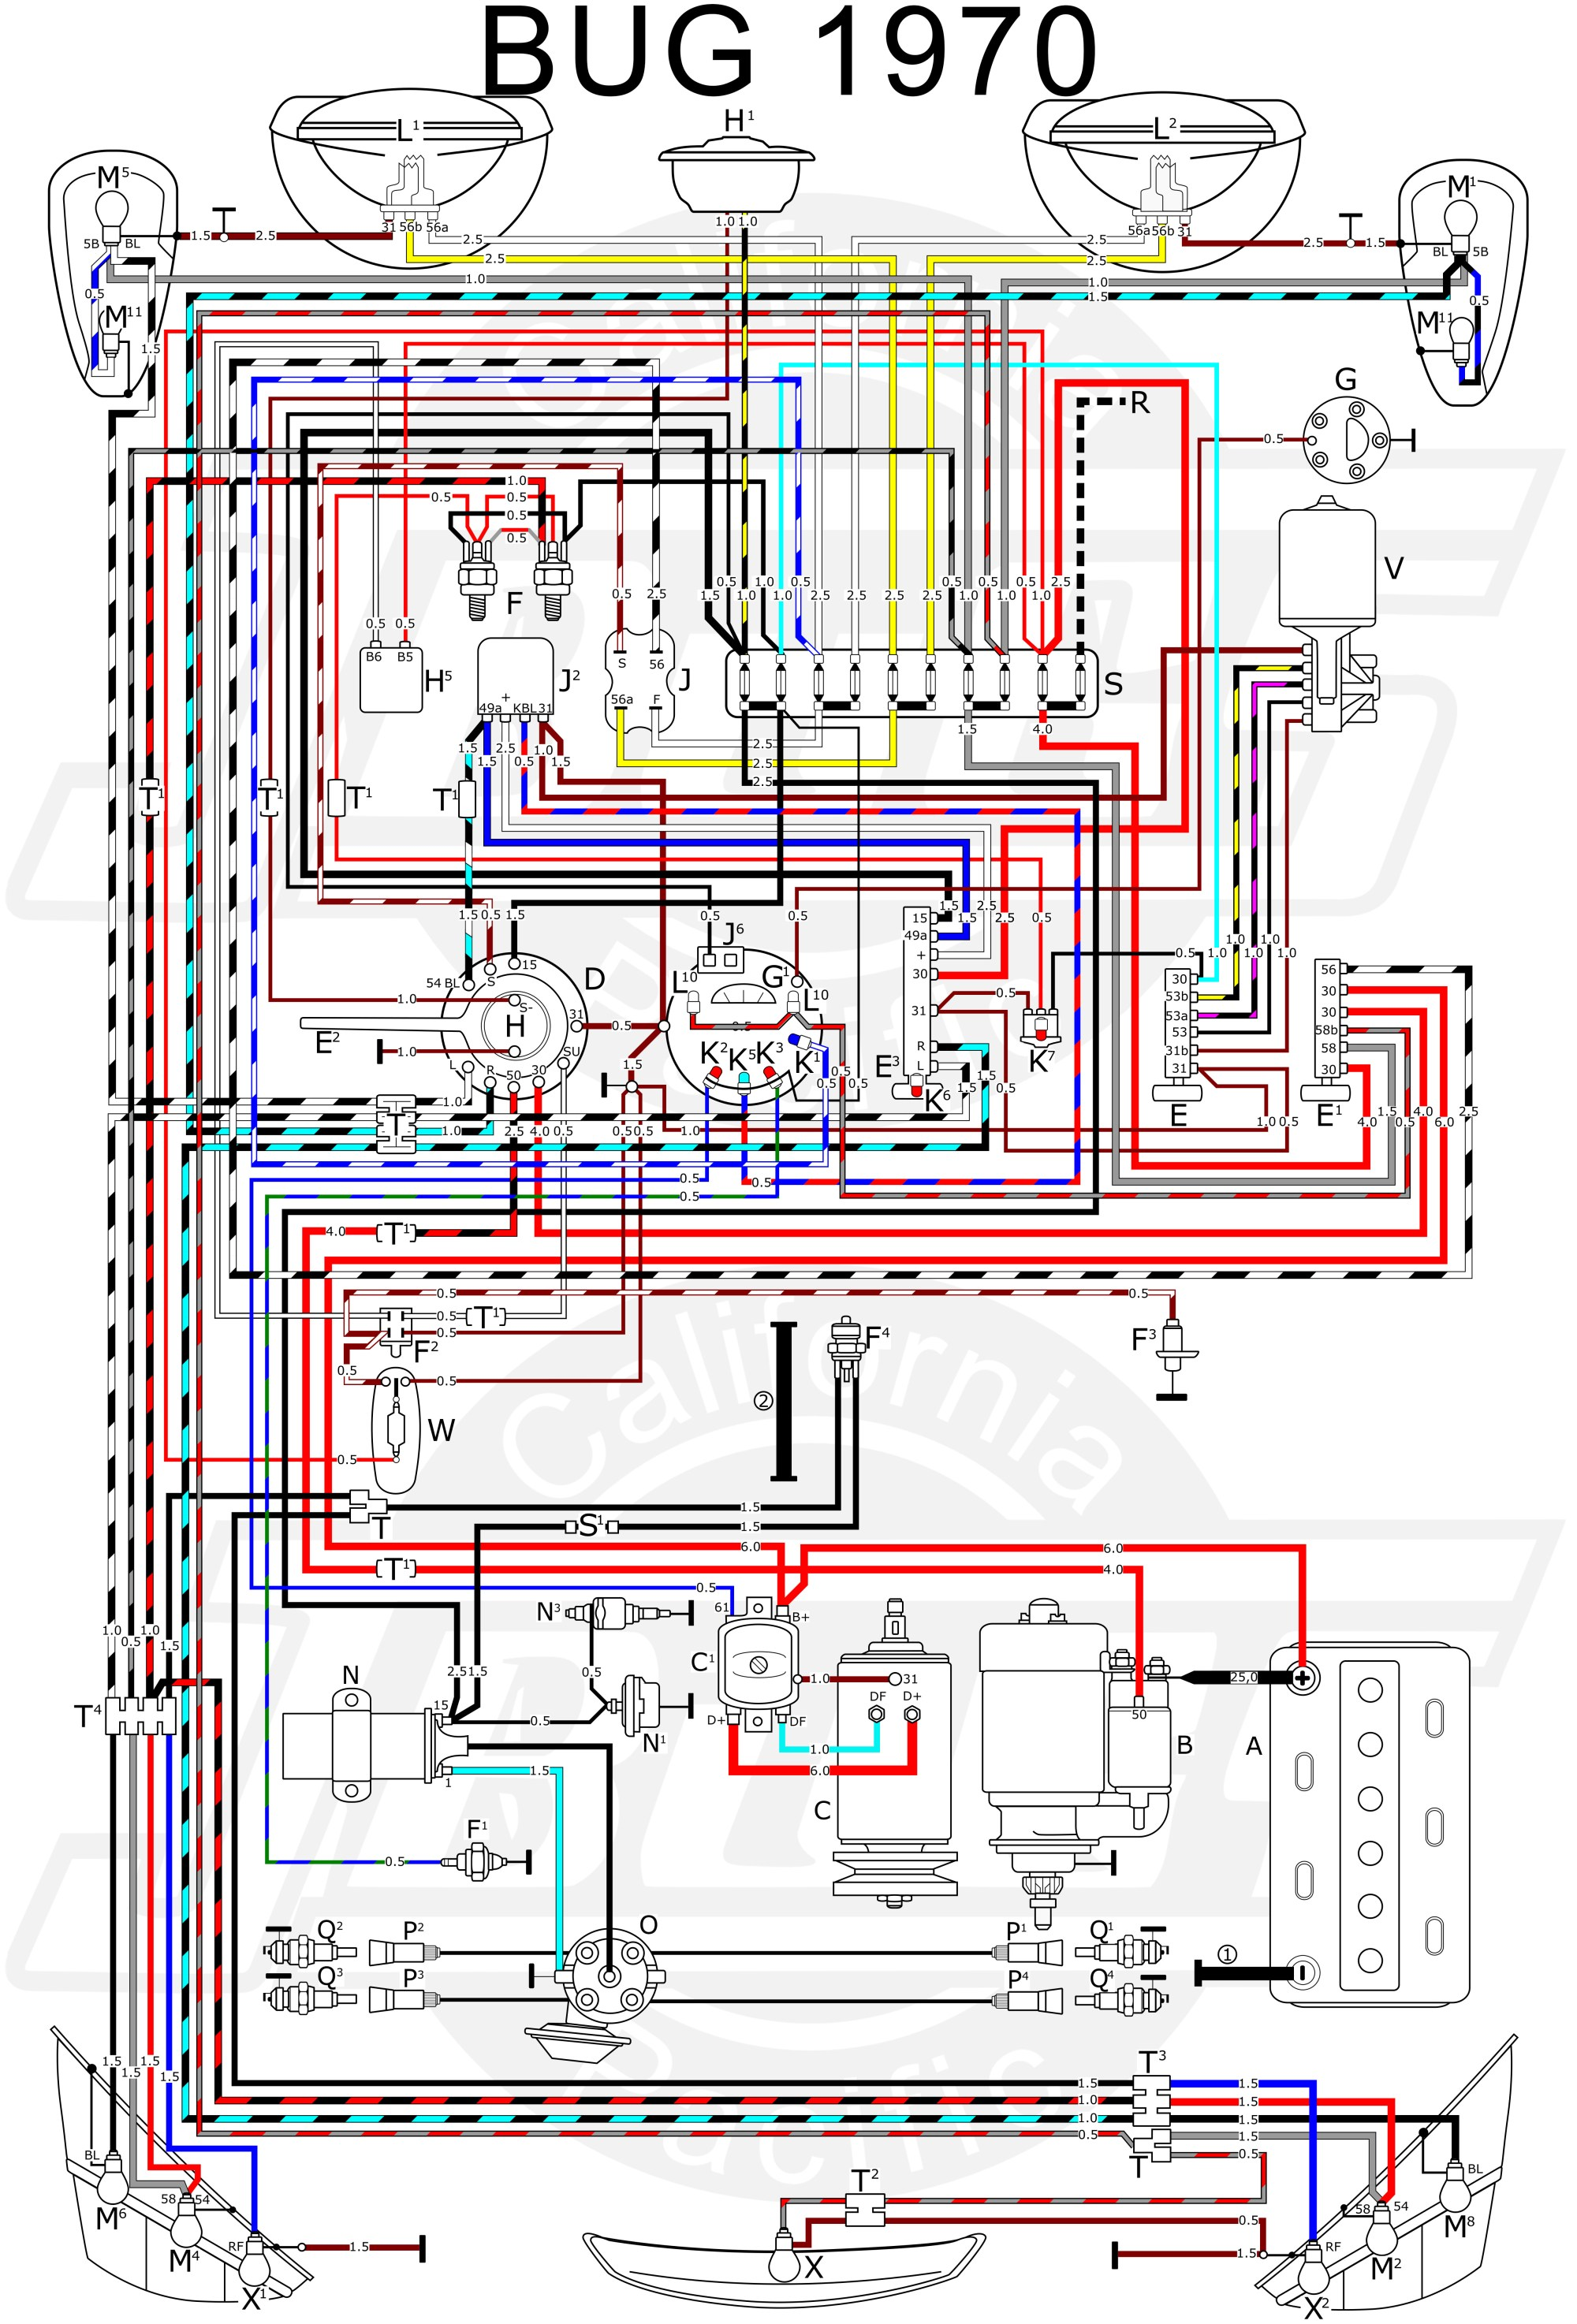 hight resolution of girardin bus wiring diagrams wire management u0026 wiring diagramcollins bus wiring diagrams wiring diagram advance